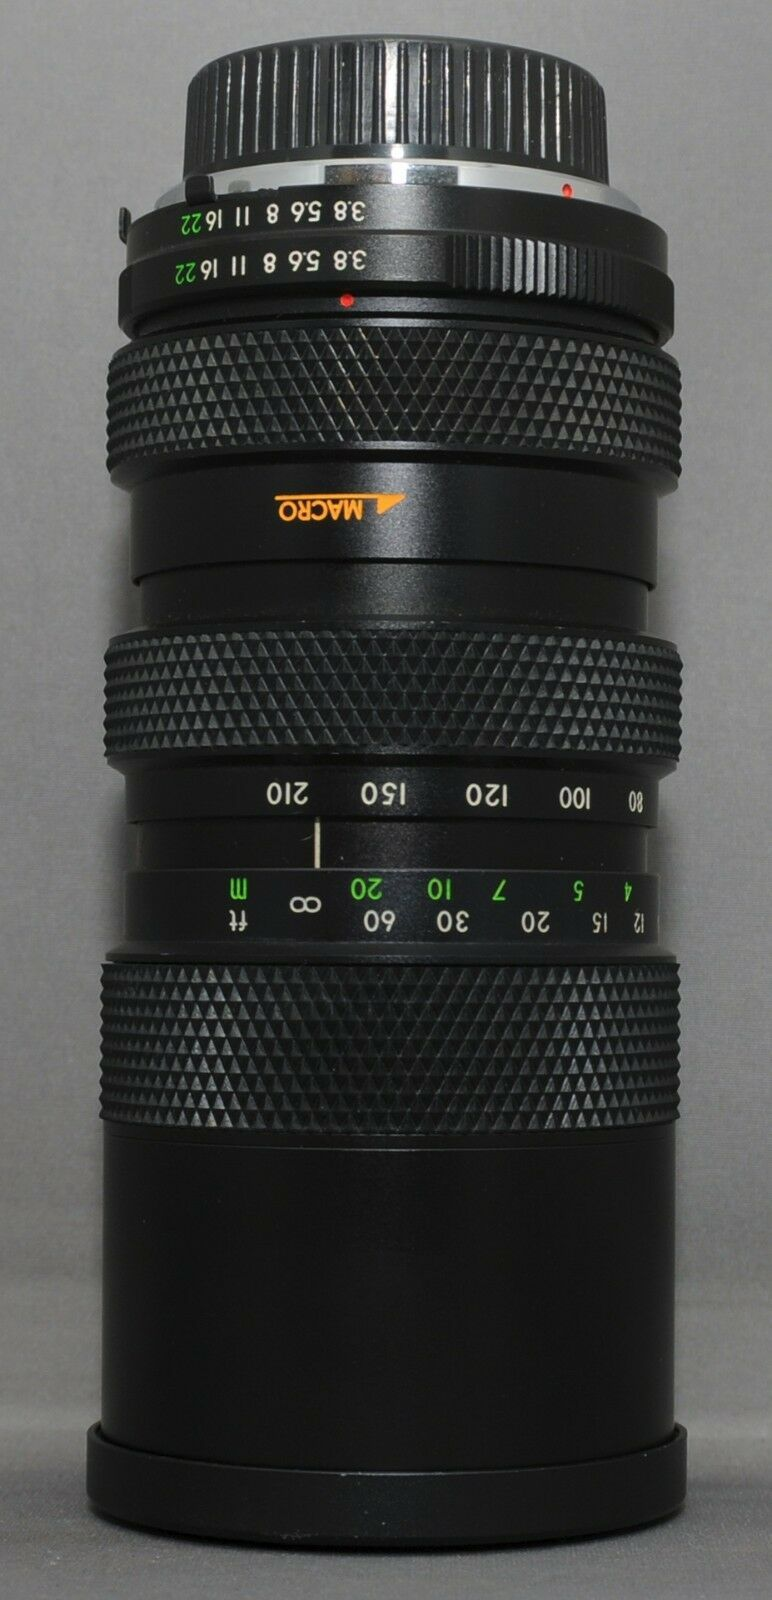 DEJUR MC 80-210mm F3.8 MACRO Minolta MD Mount SLR Film Camera Lens +Case Japan